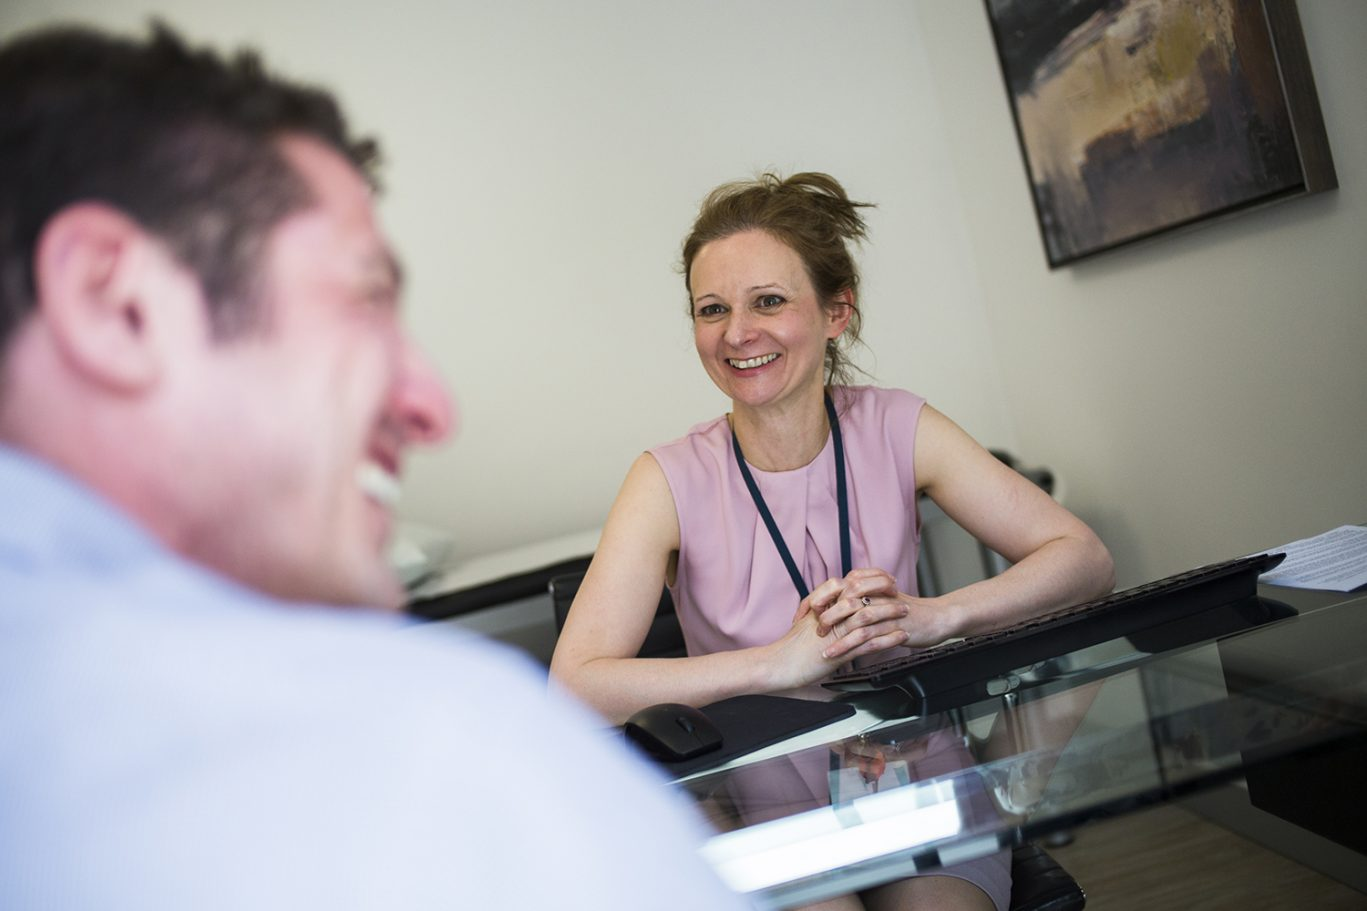 Dr Anna Carby, Medical Director, Boston Place